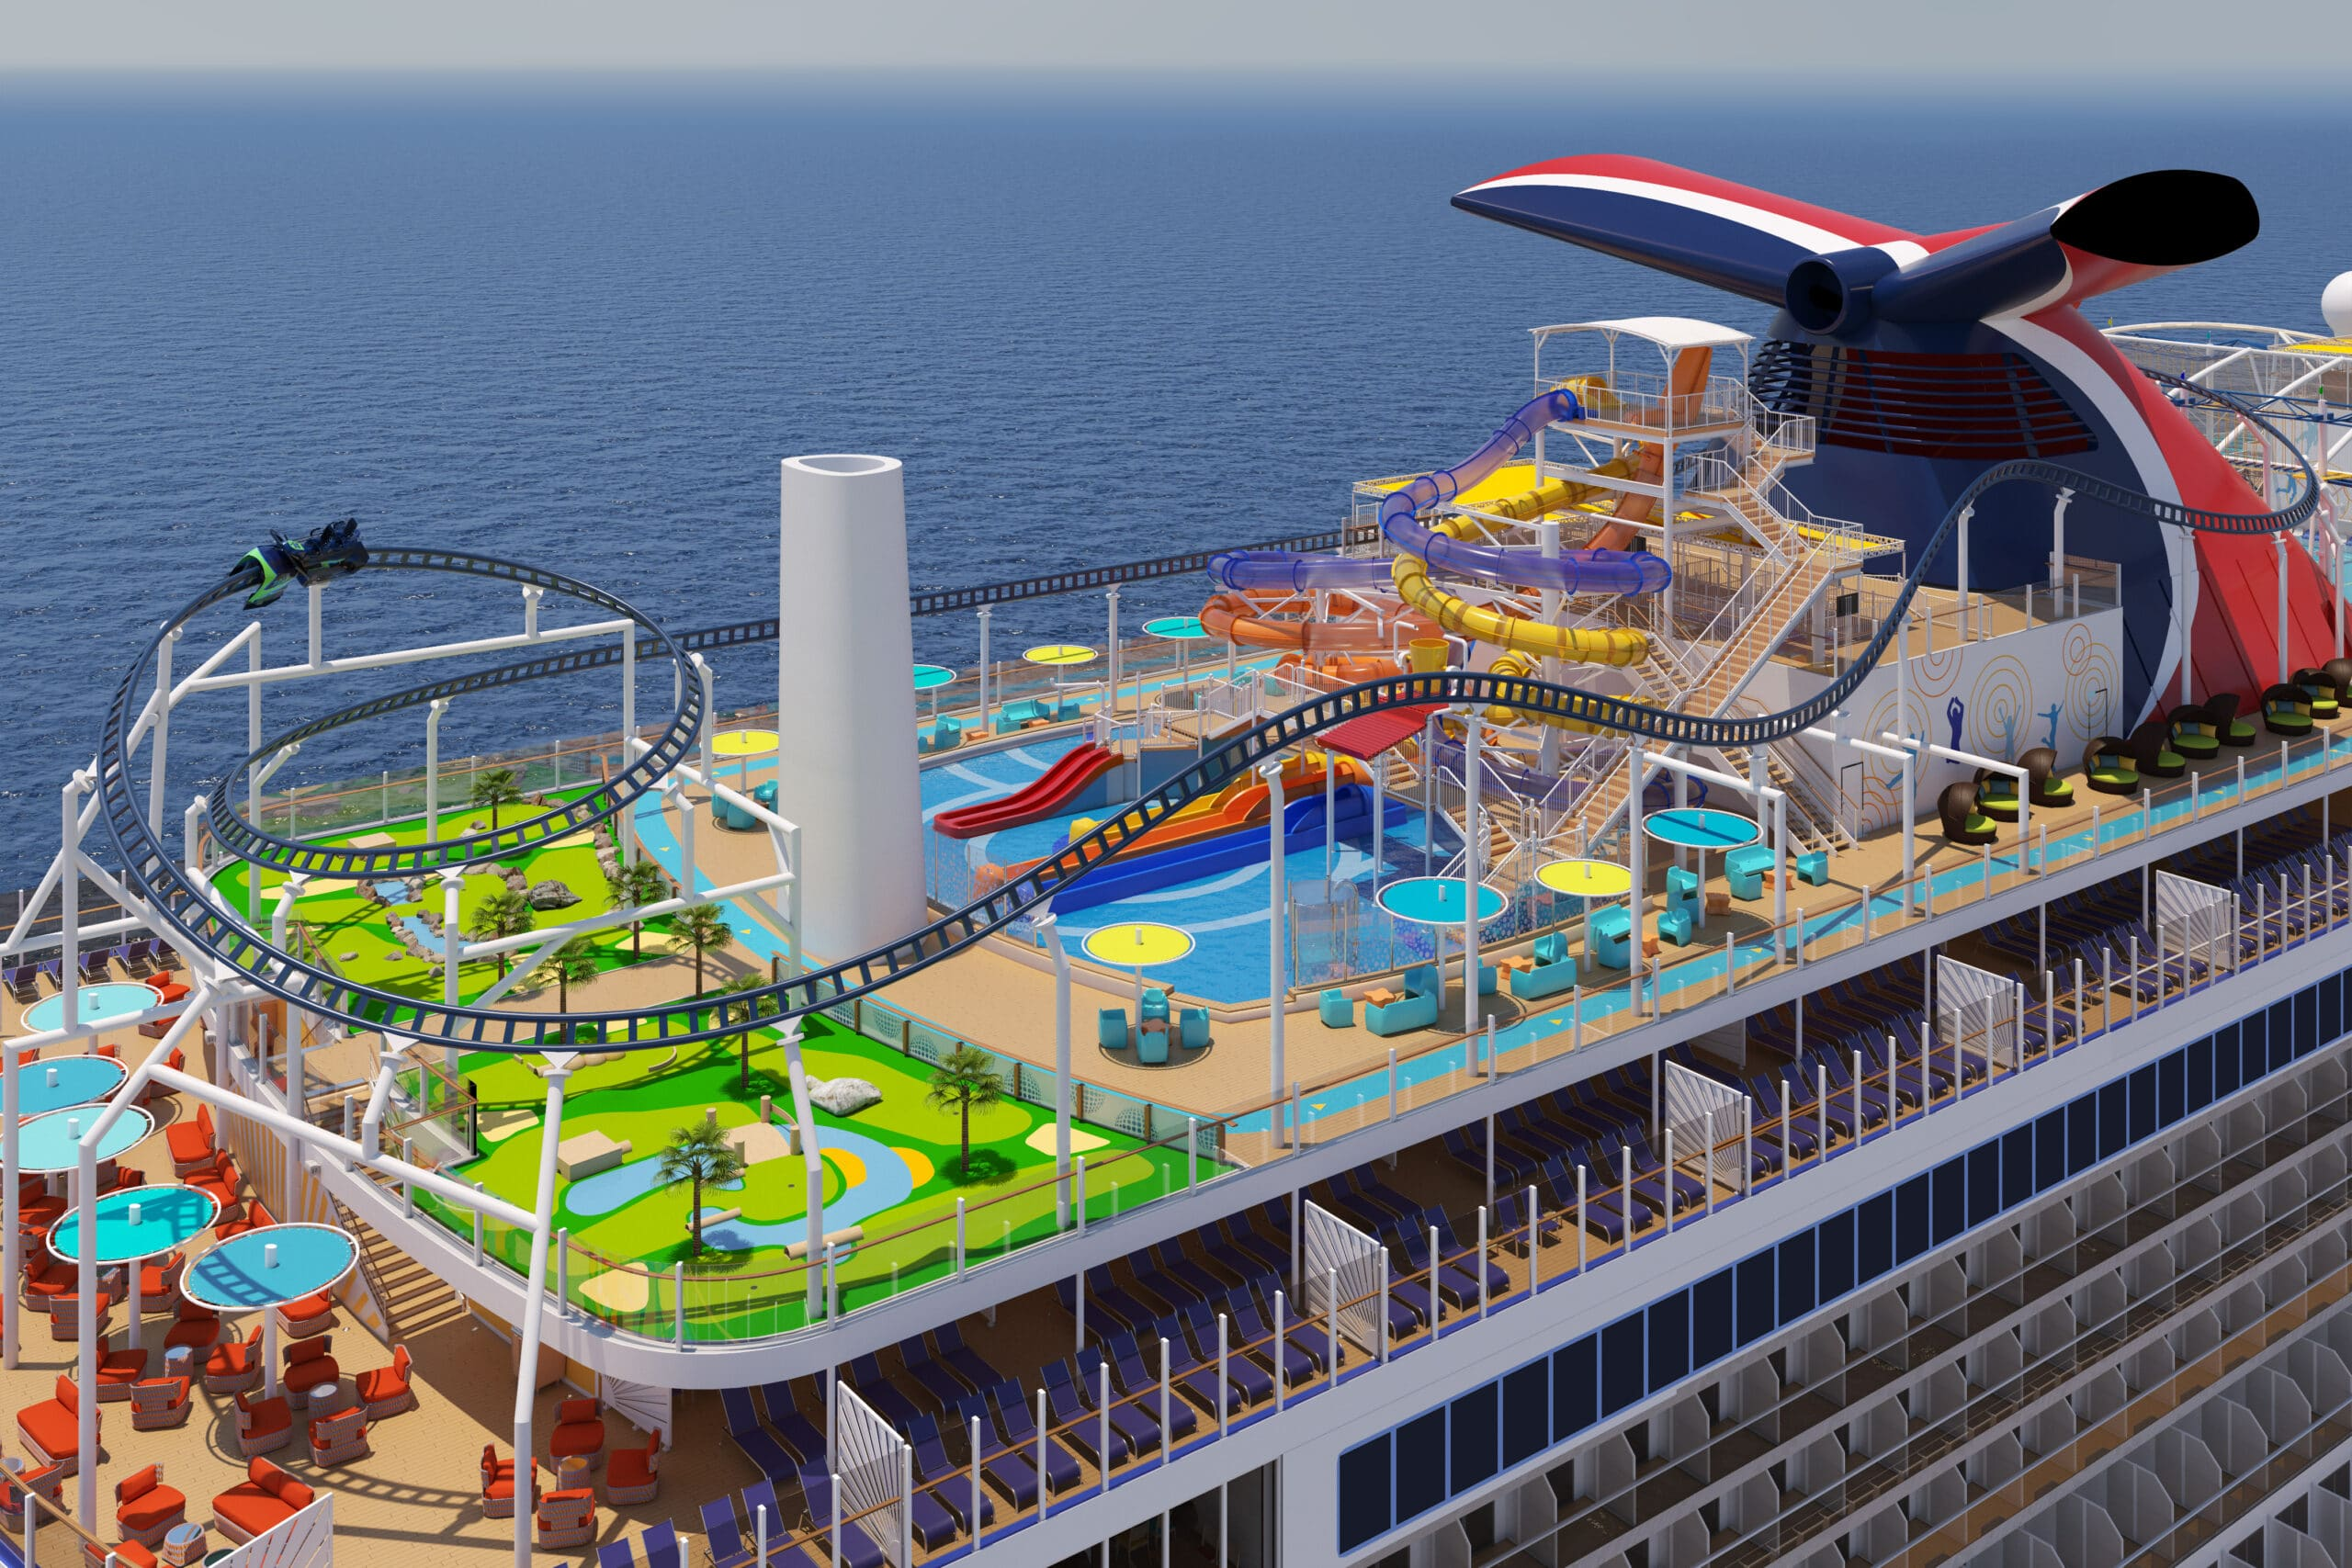 Sports deck Mardi Gras Carnivel Cruise Line. Six Distinctive, Themed Zones Will Deliver the Fun Carnival is Known For, All Coming on Mardi Gras in 2020. Learn more about this ship on my blog.